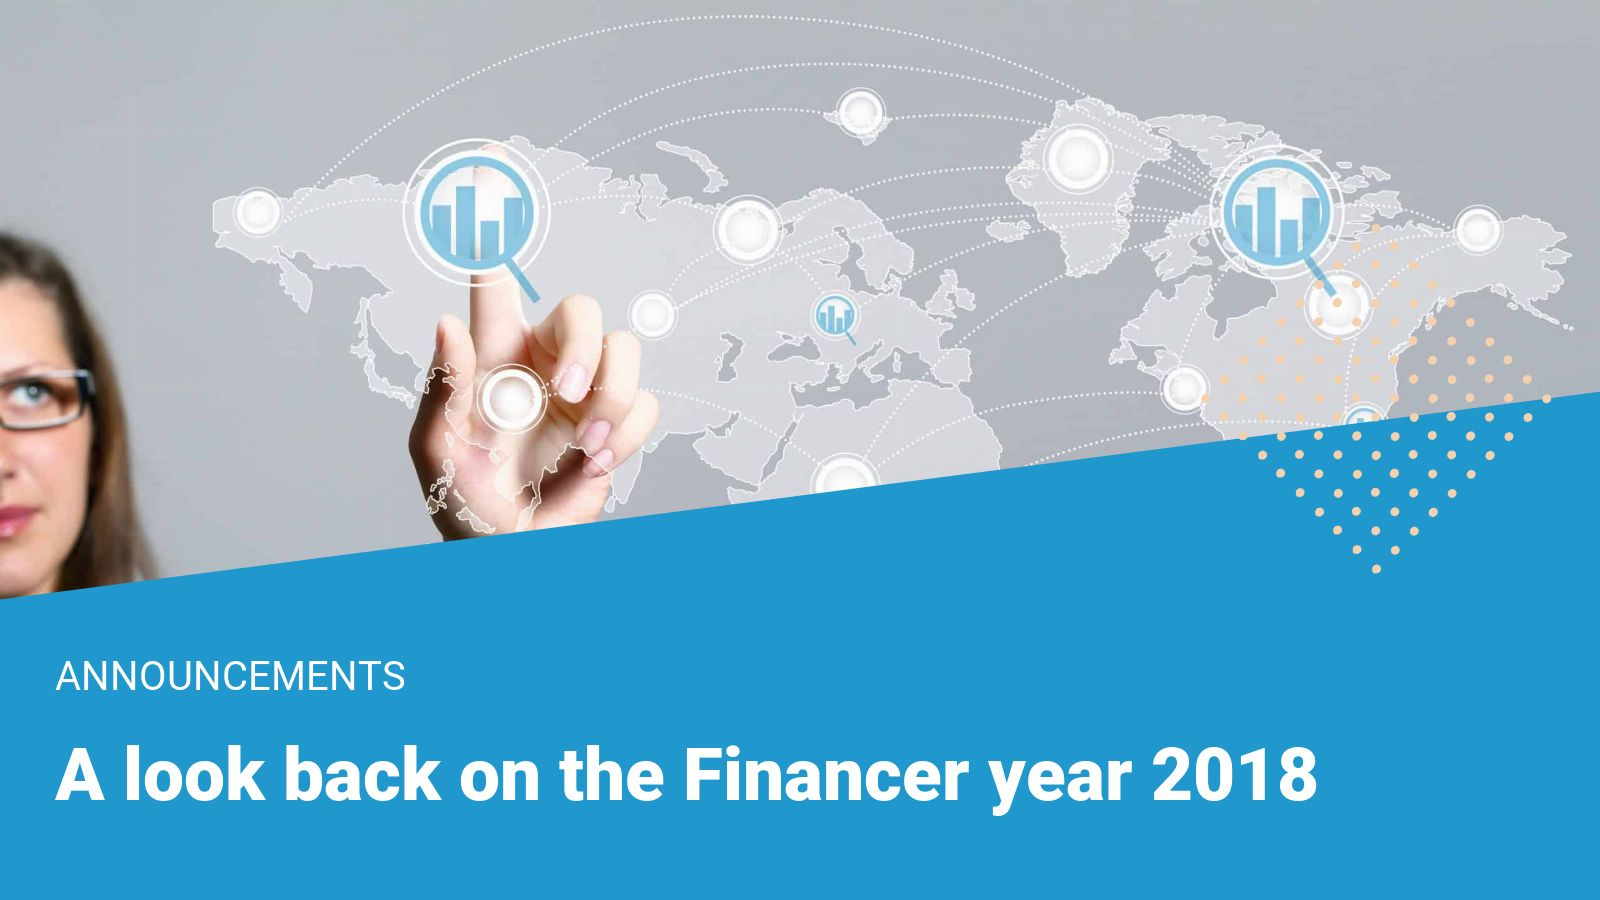 financer financial services connecting the world